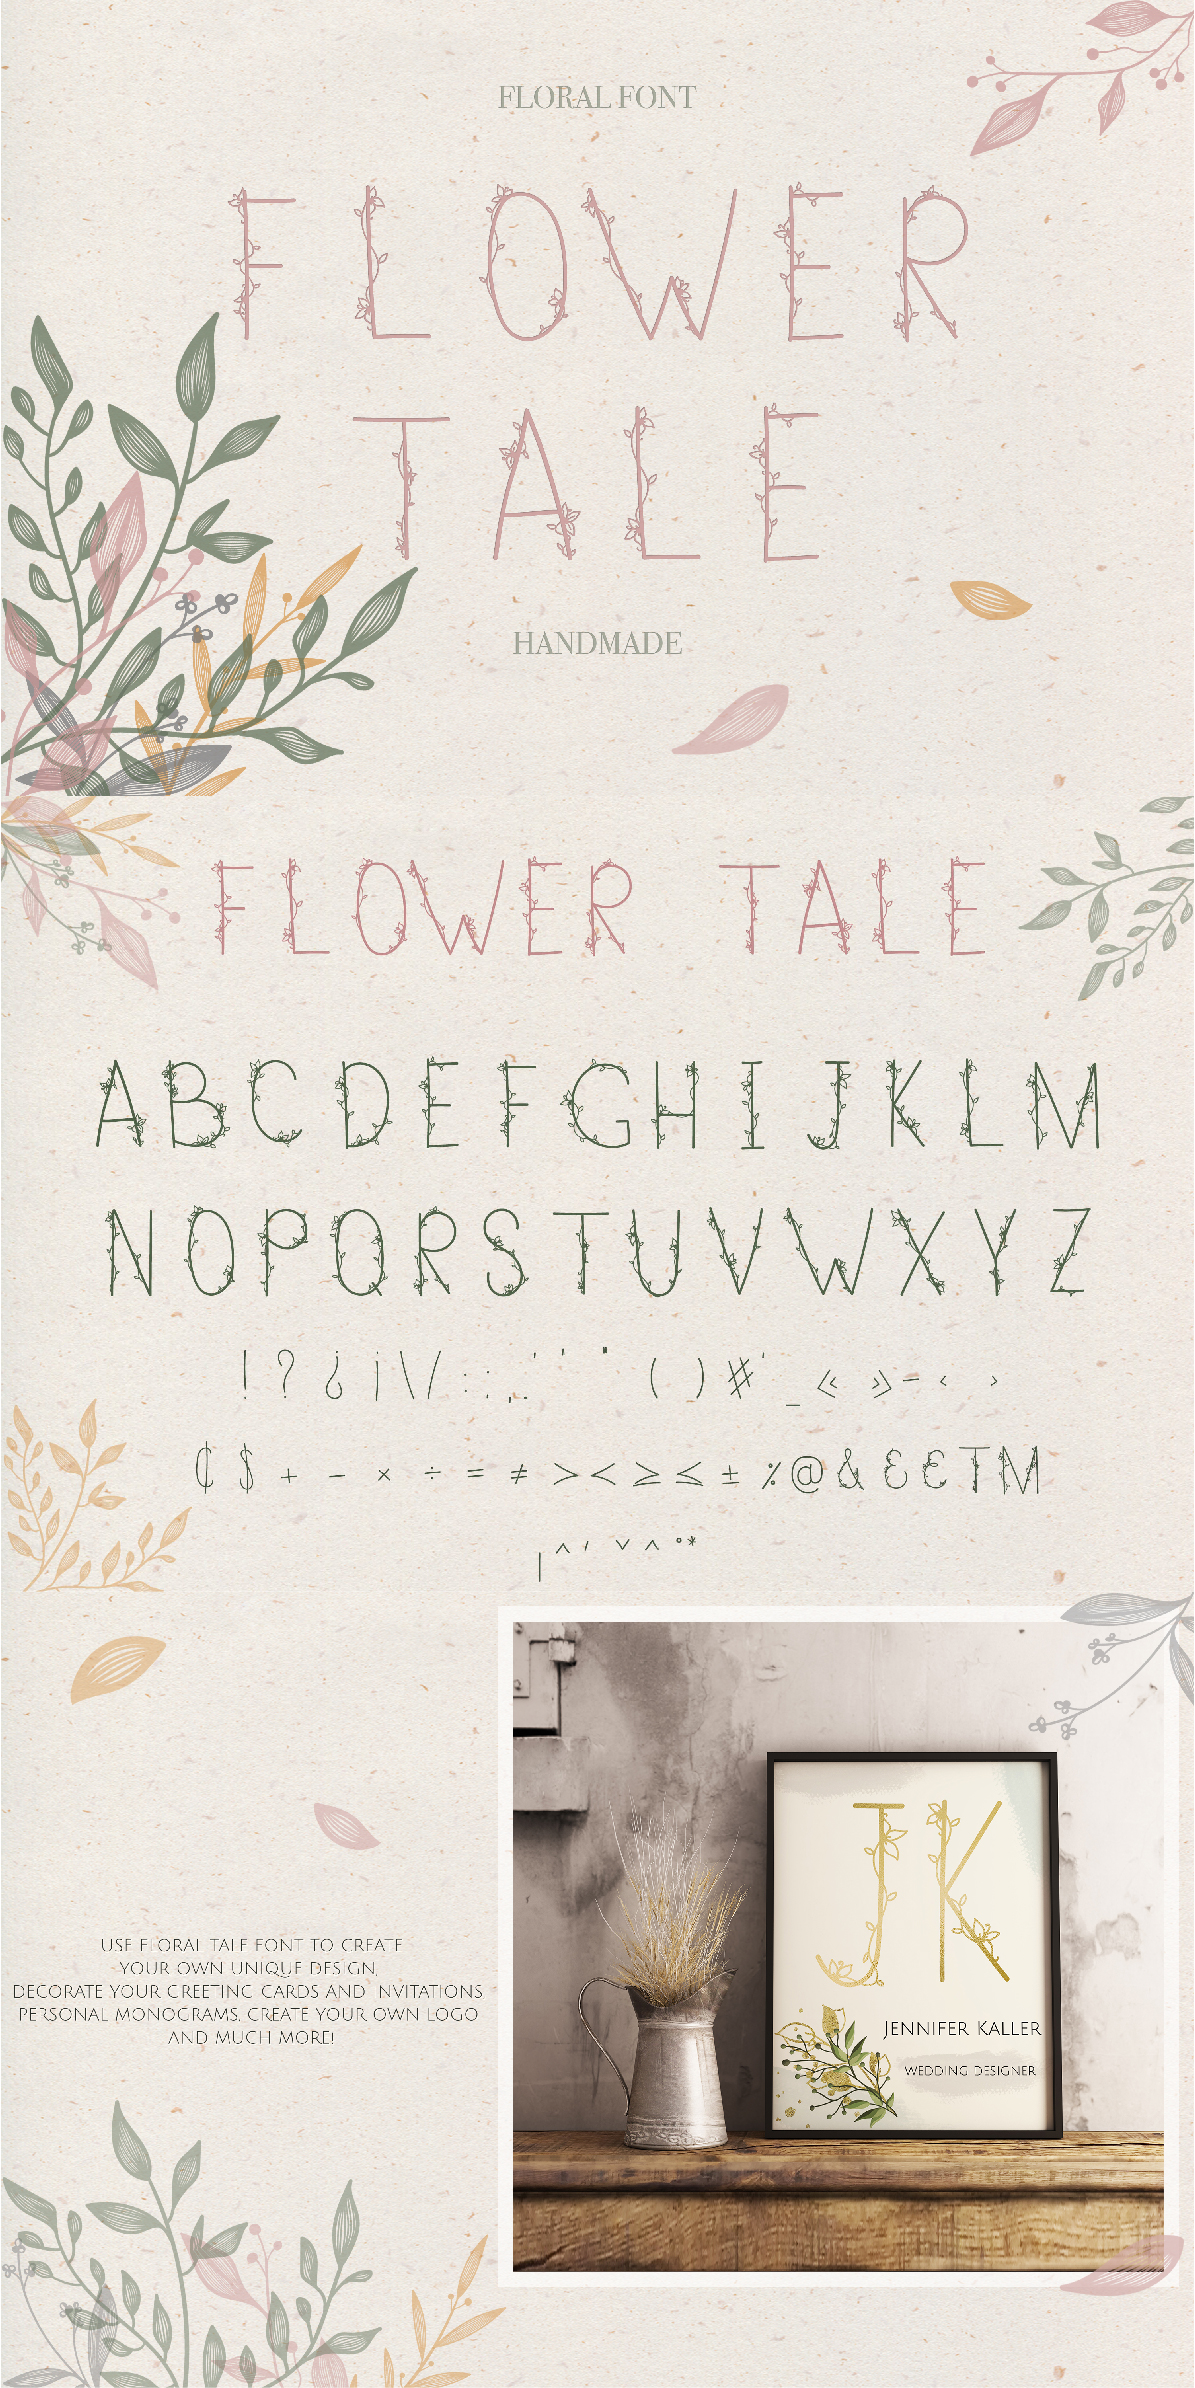 Flower Tale - Handwritten Floral Font example image 6